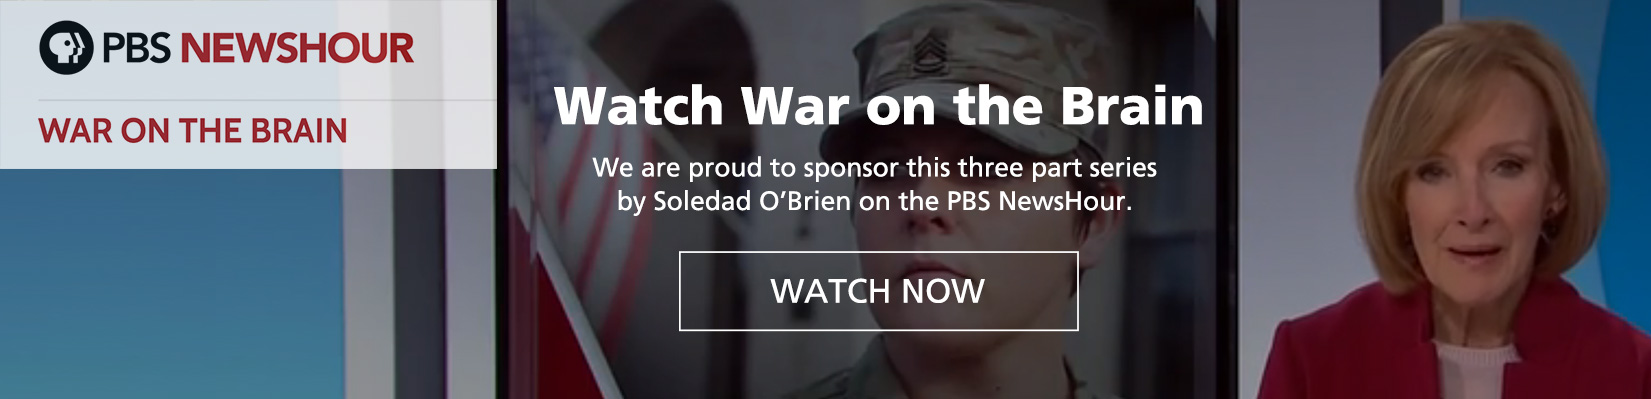 Cohen Veterans Bioscience is proud to sponsor War on the Brain by Soledad O'Brien on the PBS NewsHour